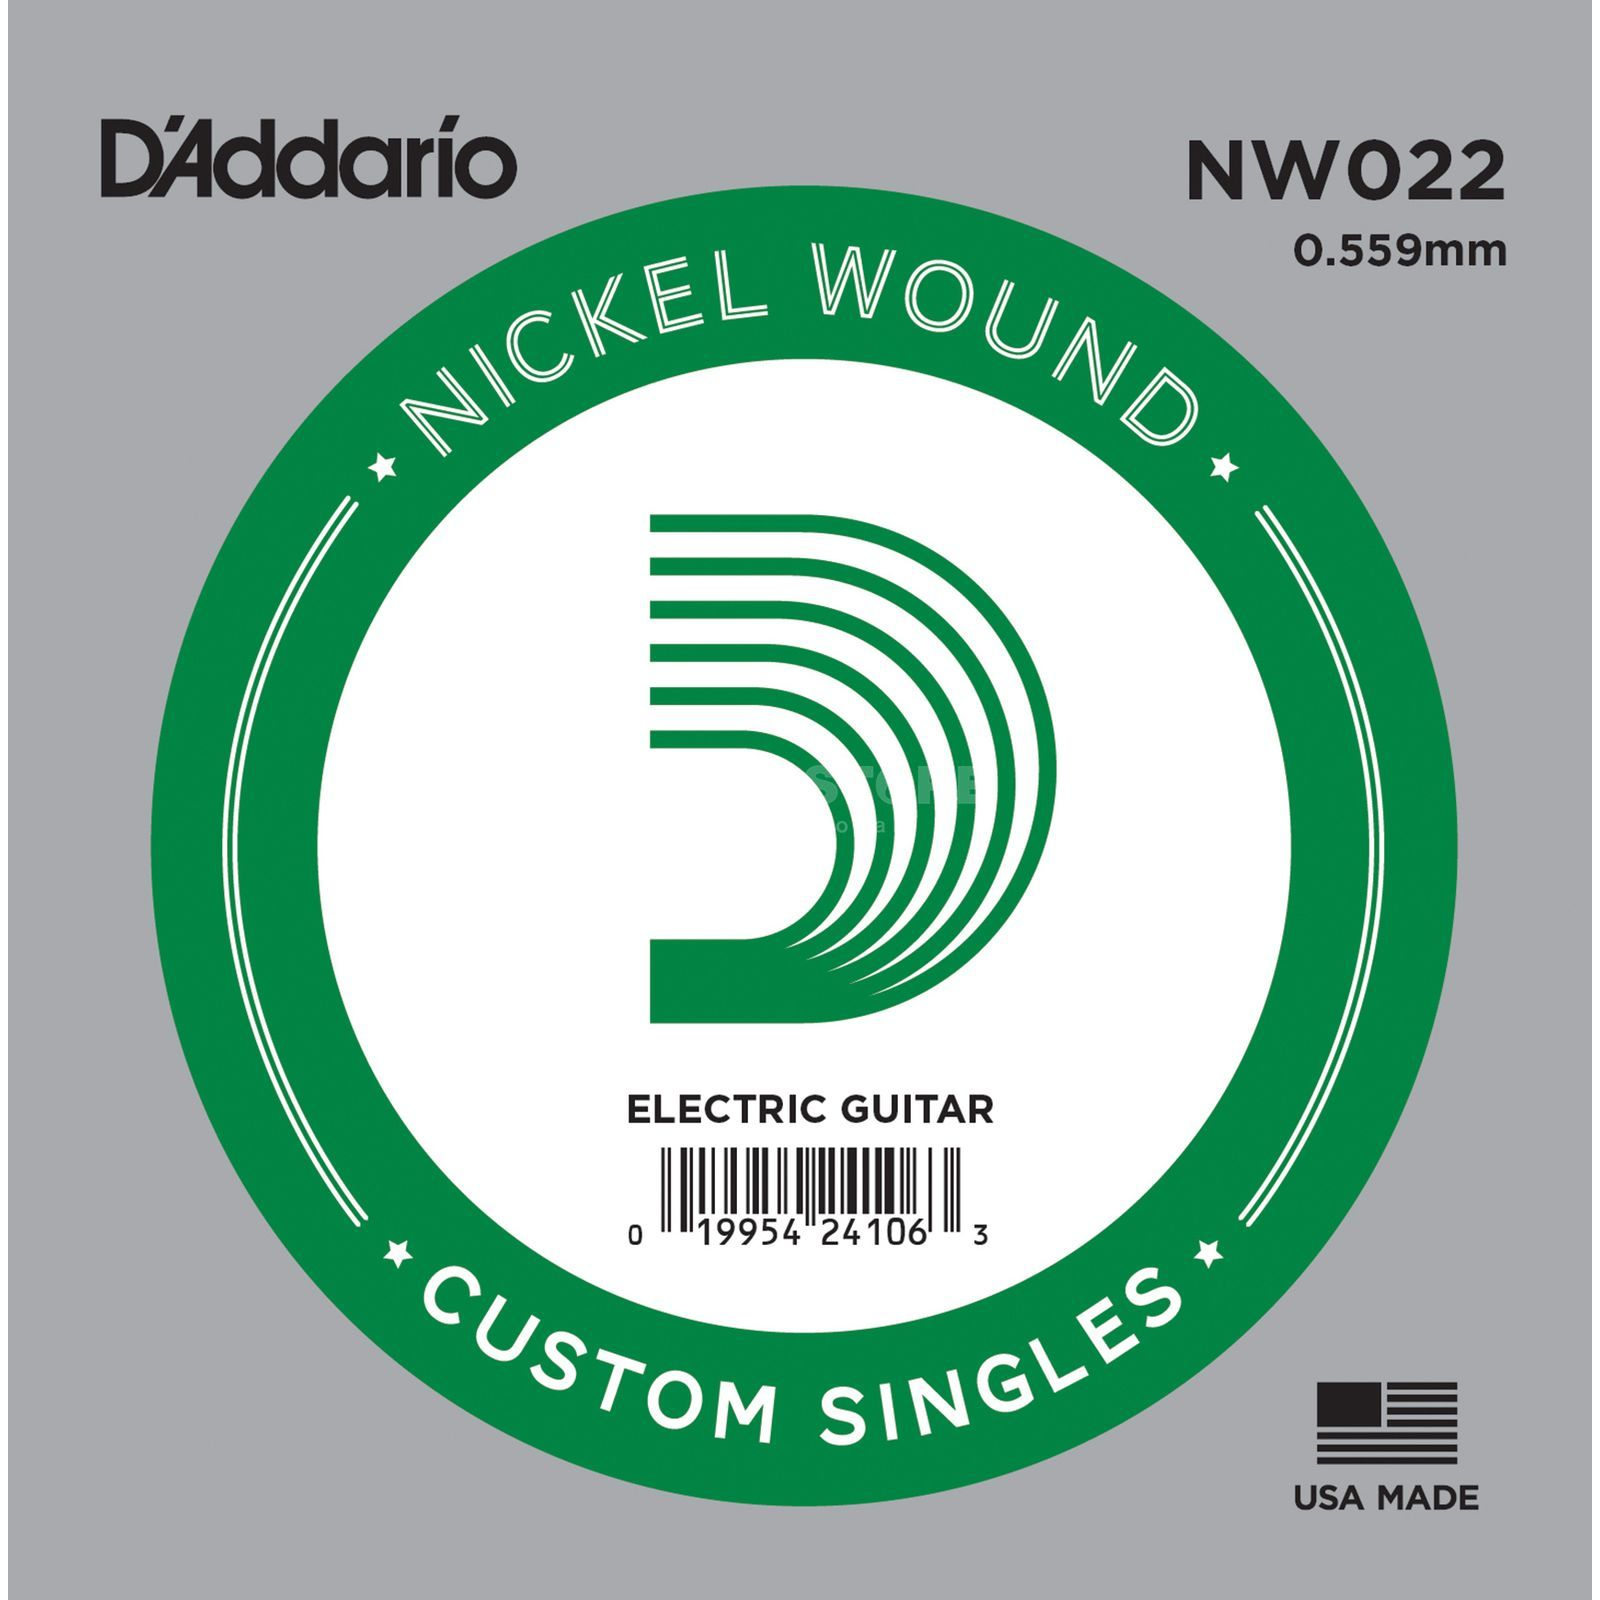 D'Addario Single String NW022 Nickelwound Zdjęcie produktu